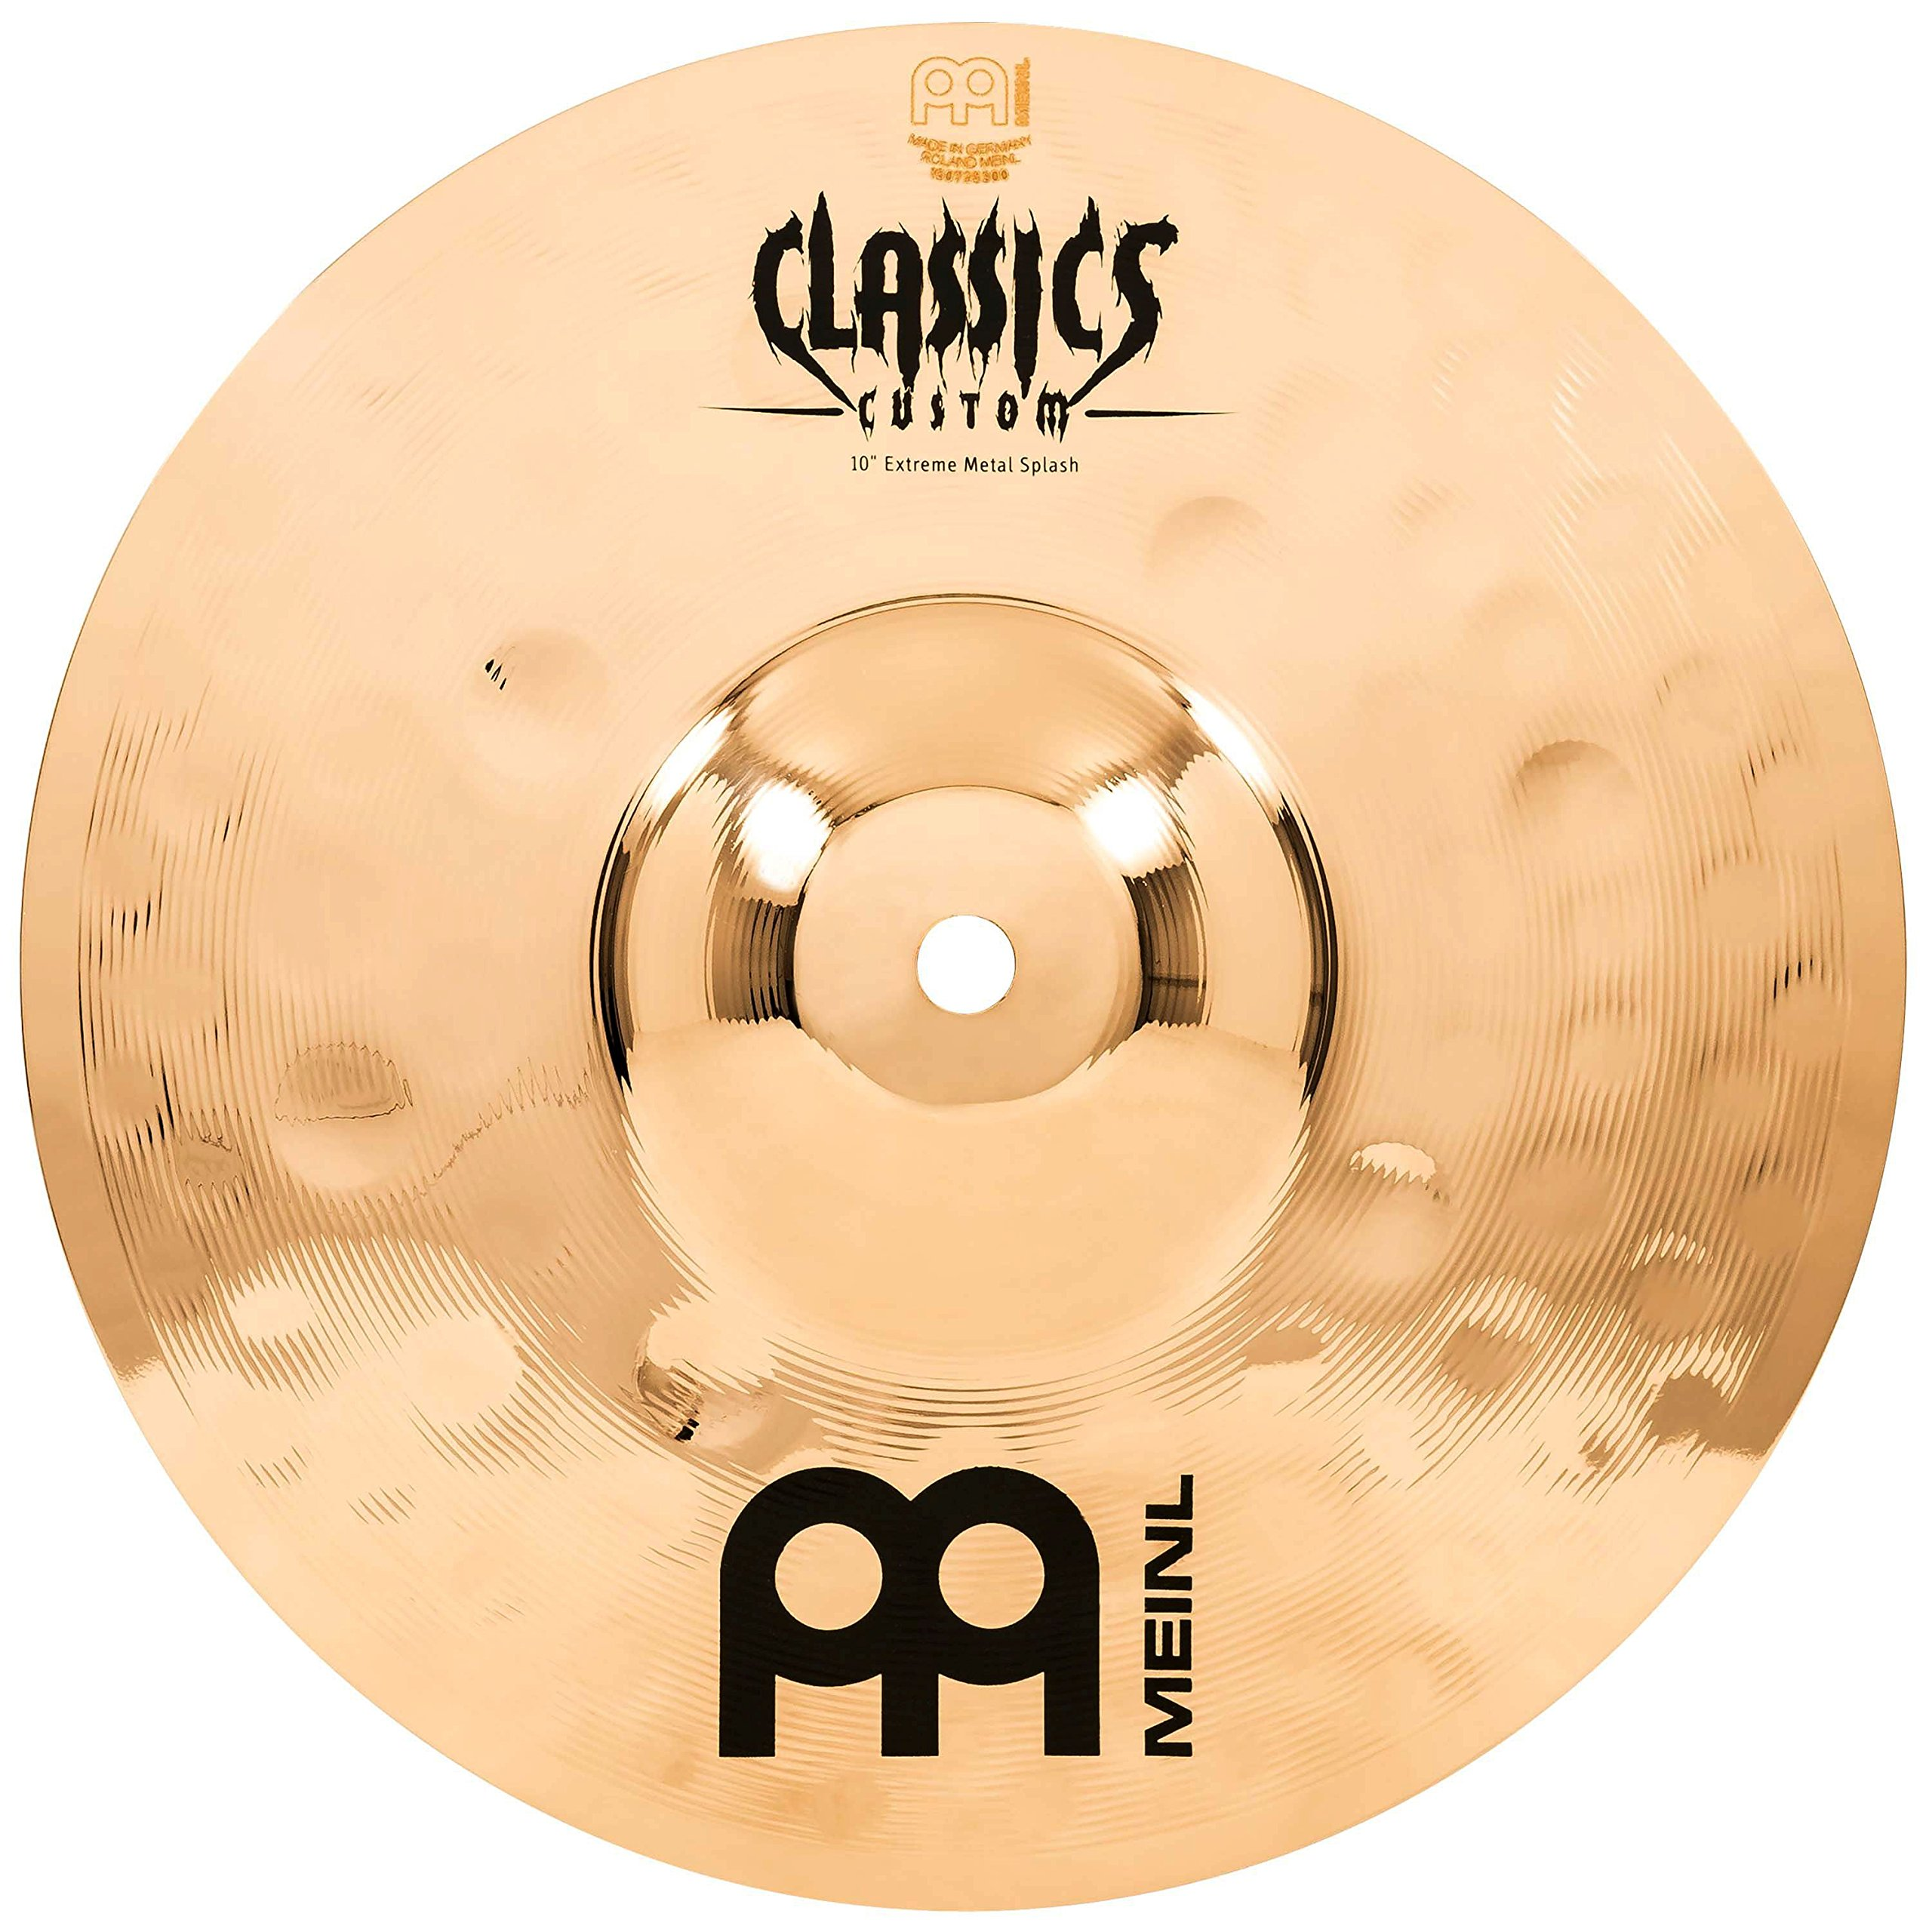 Meinl 10'' Splash Cymbal - Classics Custom Extreme Metal - Made in Germany, 2-YEAR WARRANTY (CC10EMS-B)